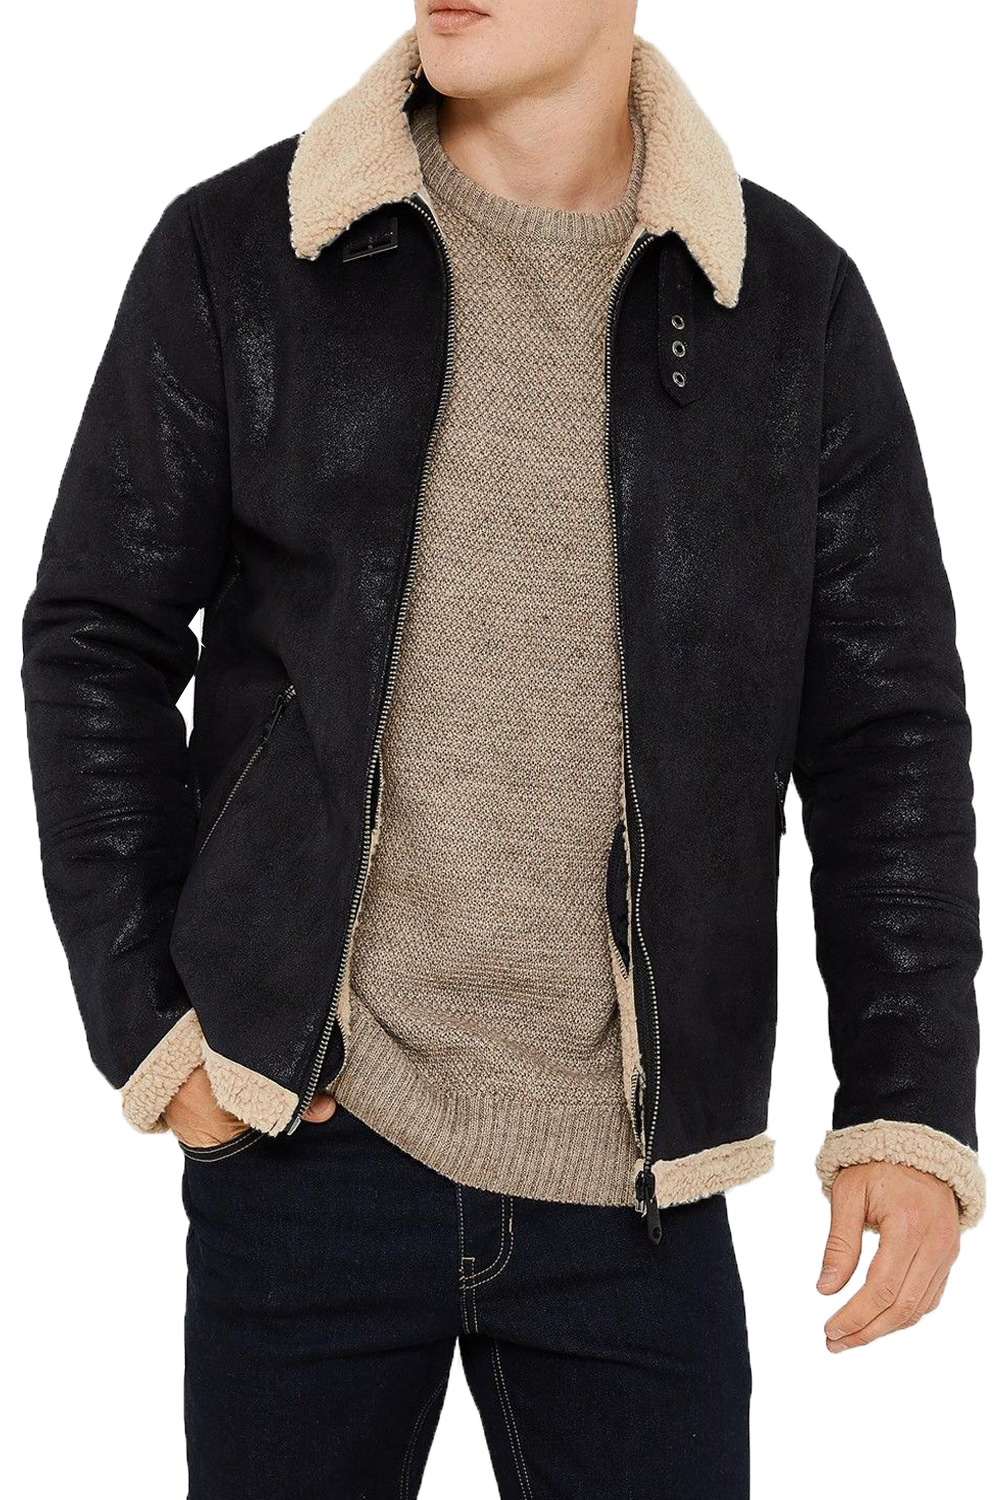 Threadbare Mens Lancaster Vintage Sherpa Fleece Lined Coat Borg ...